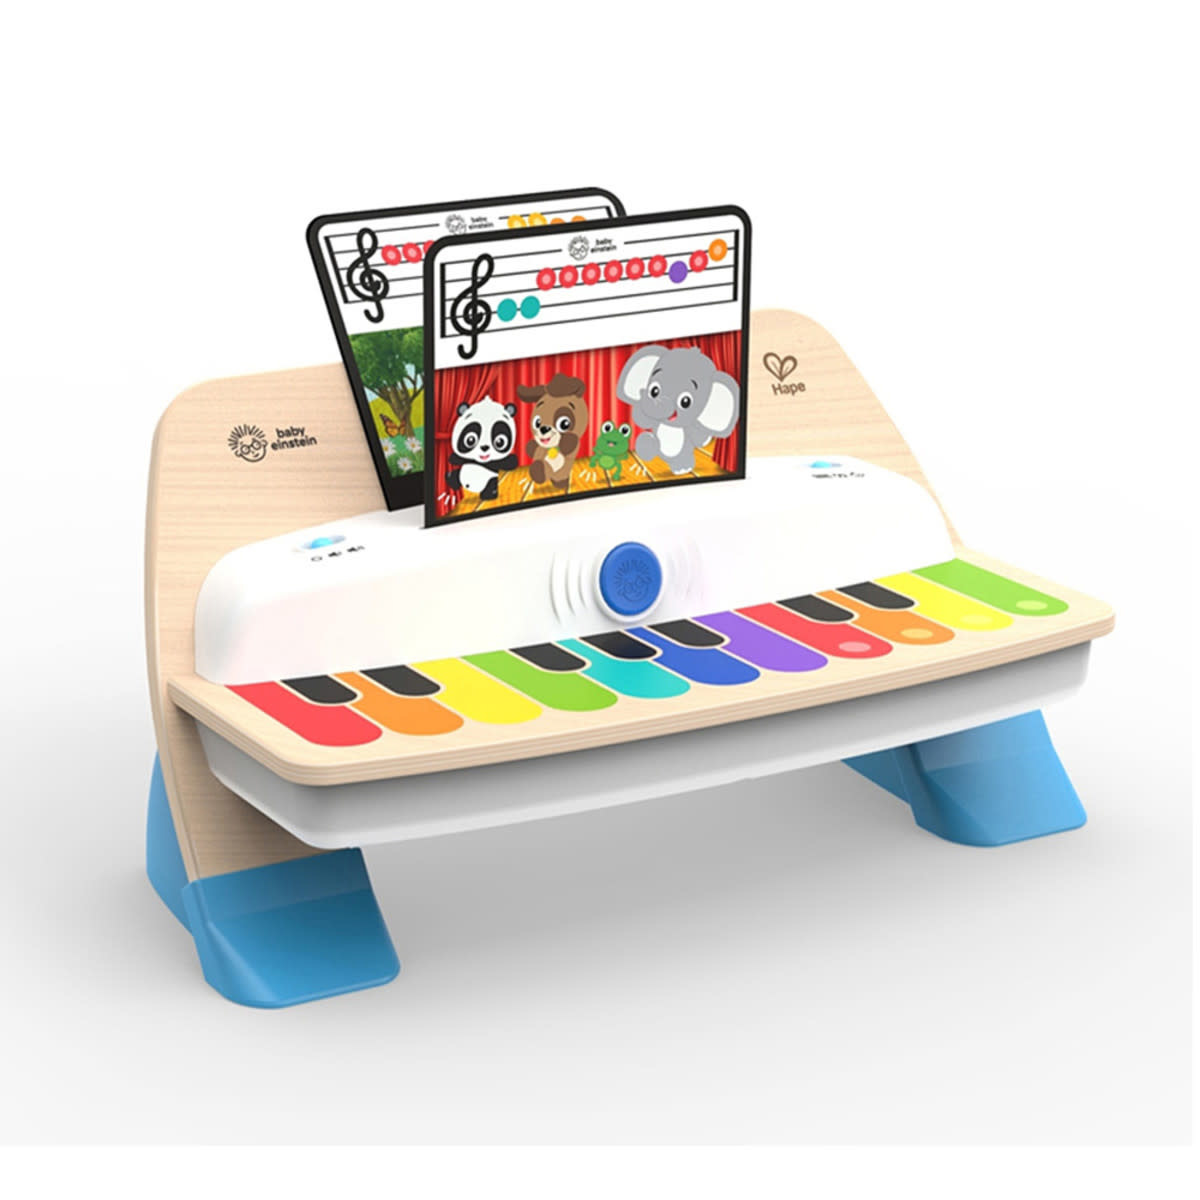 Magic Touch Deluxe Piano by Hape